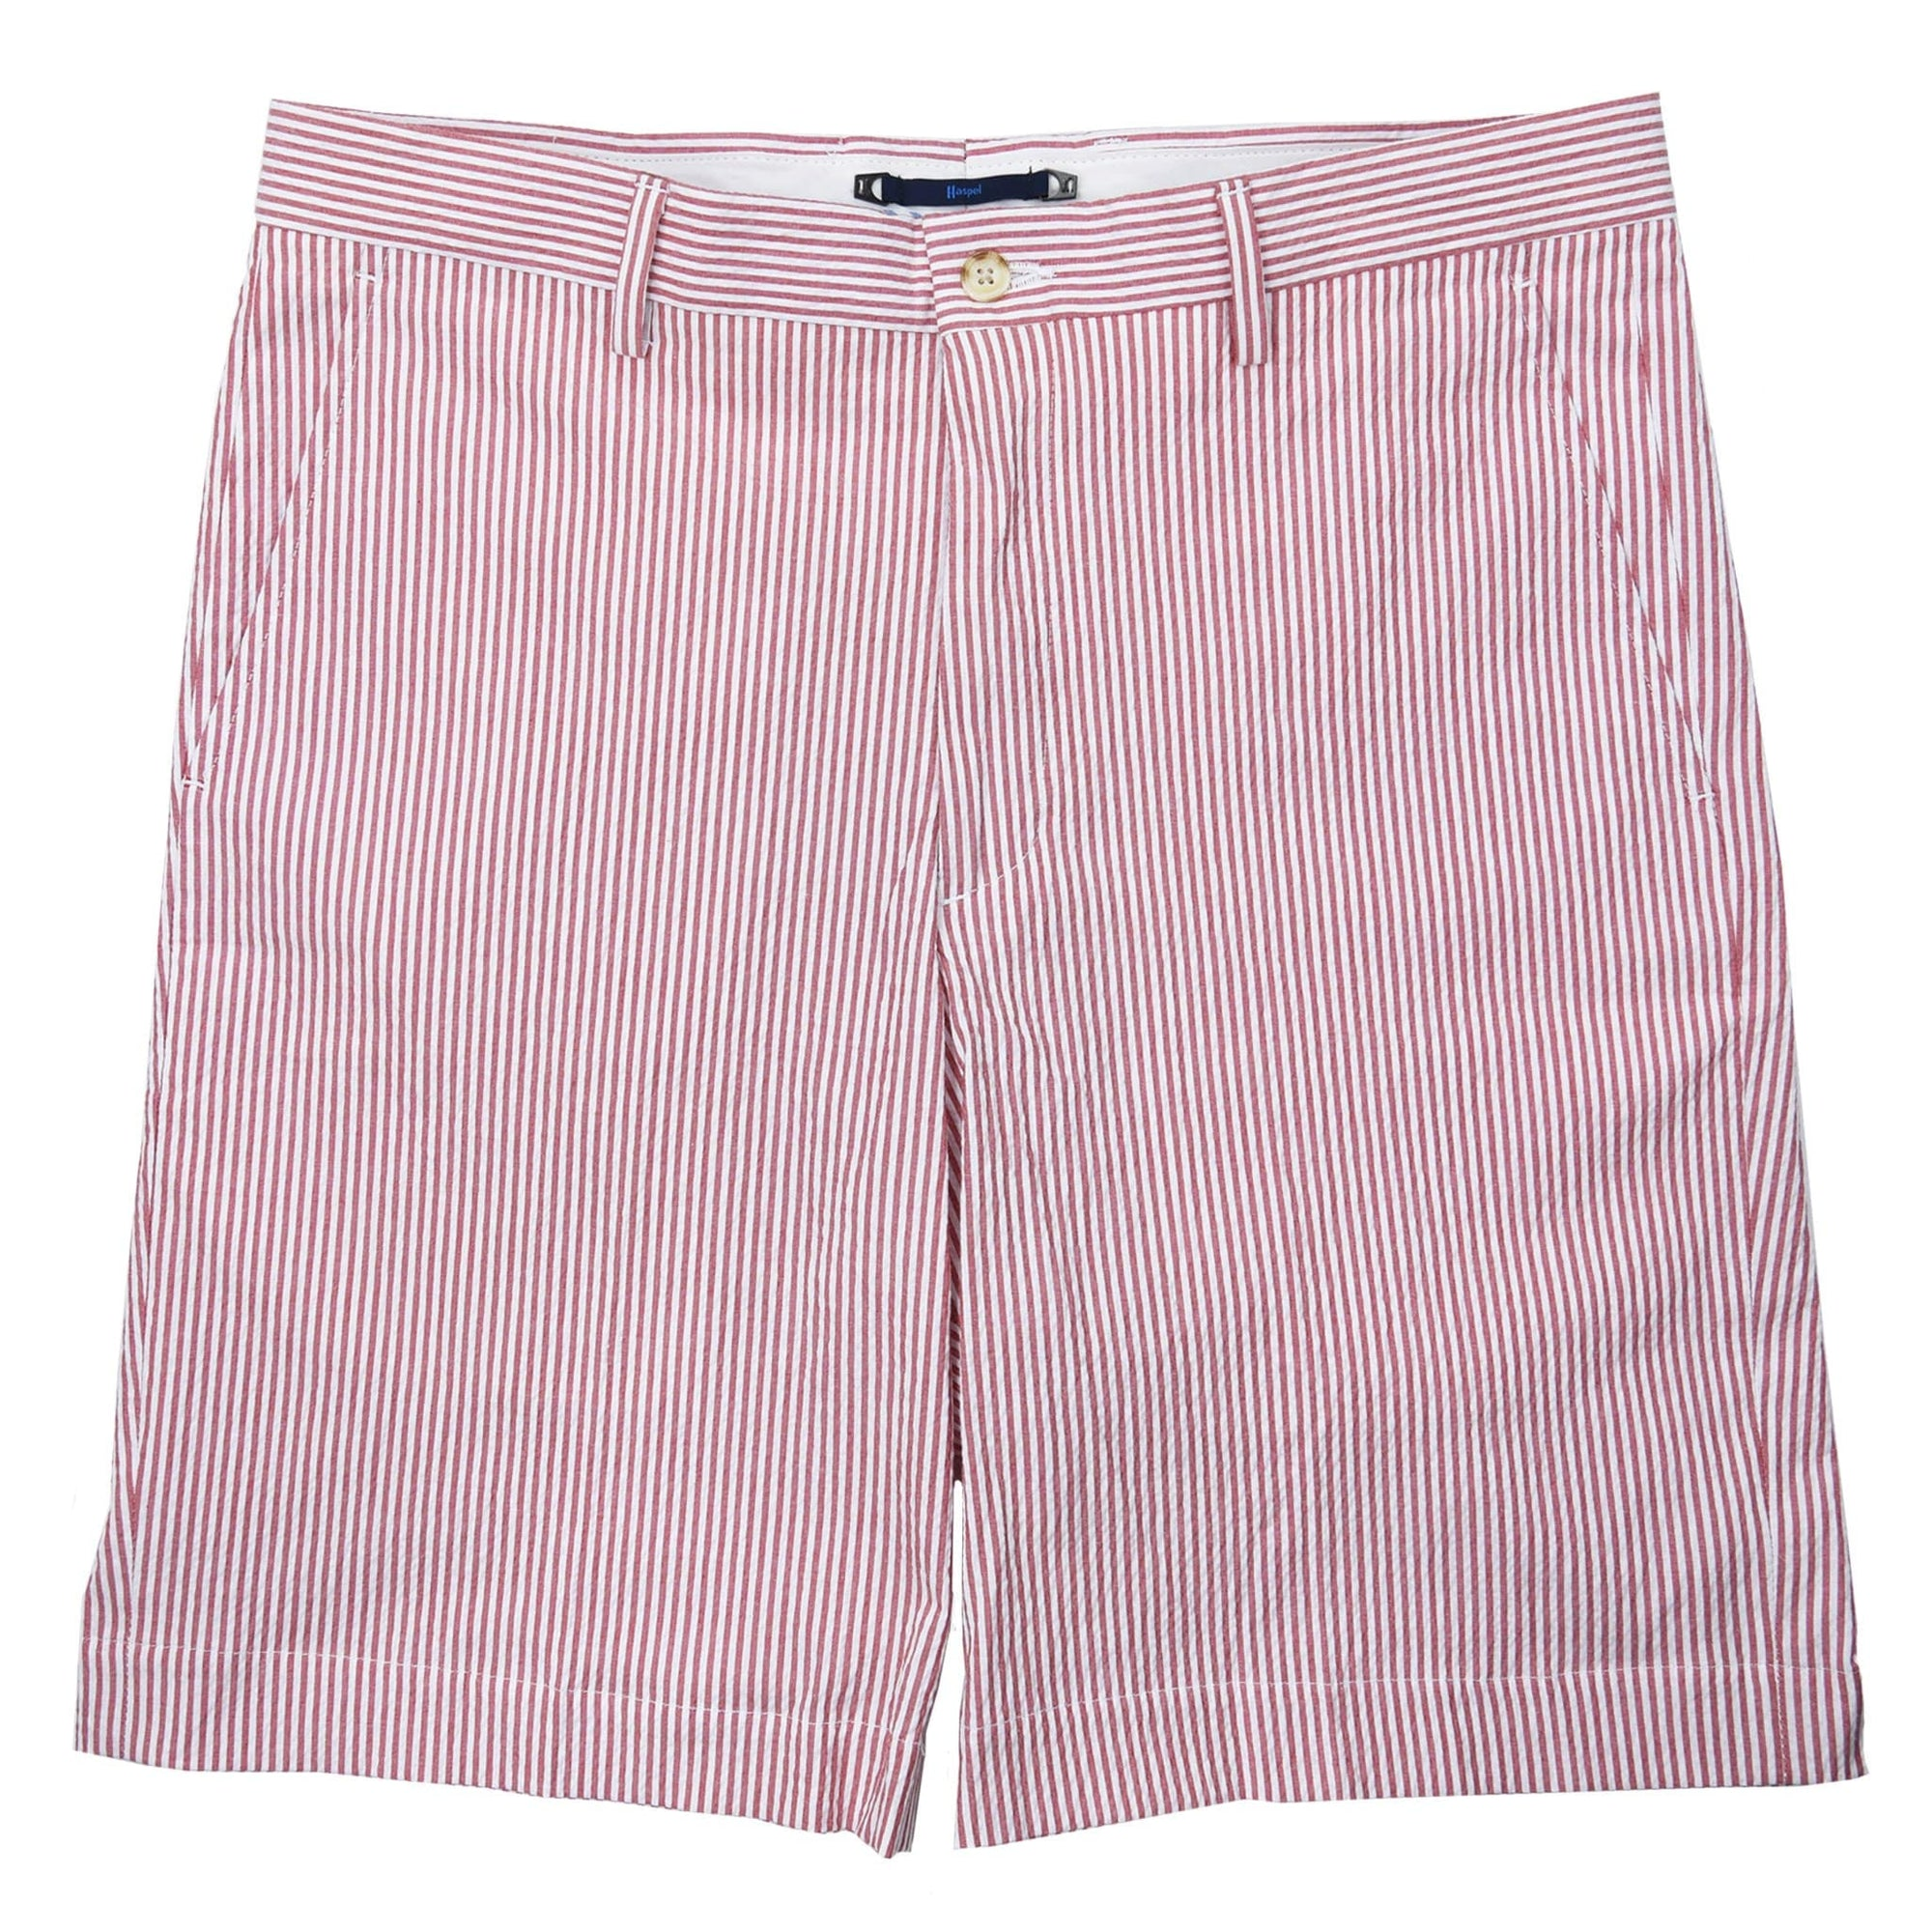 Felicity Red Seersucker Short - Haspel Clothing